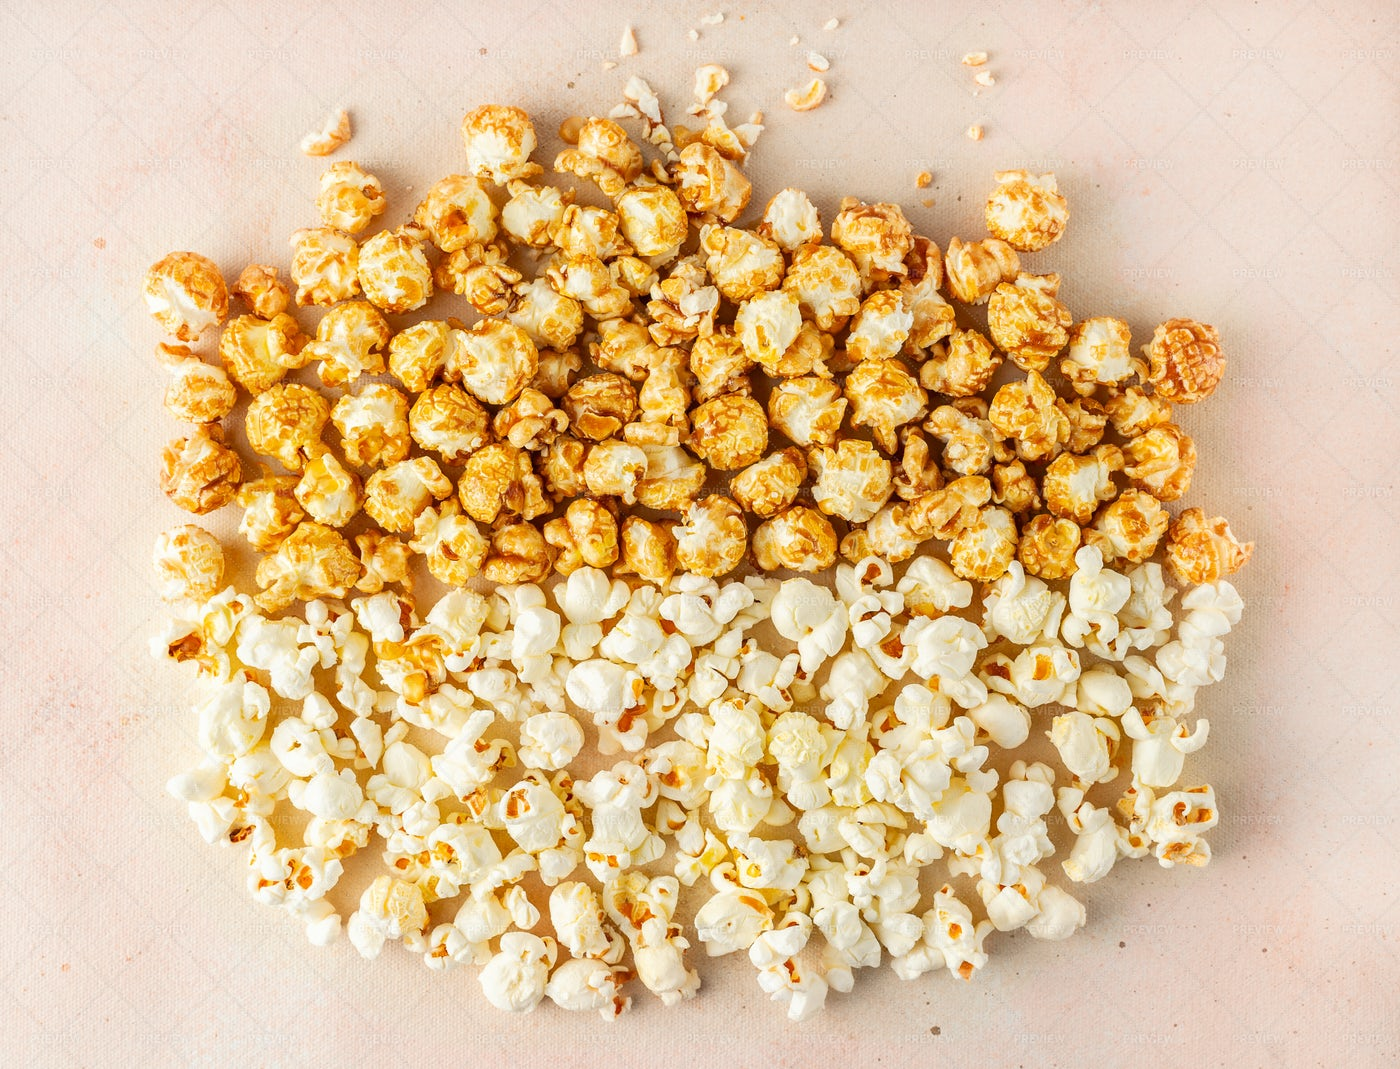 Salted And Caramelized Popcorn: Stock Photos